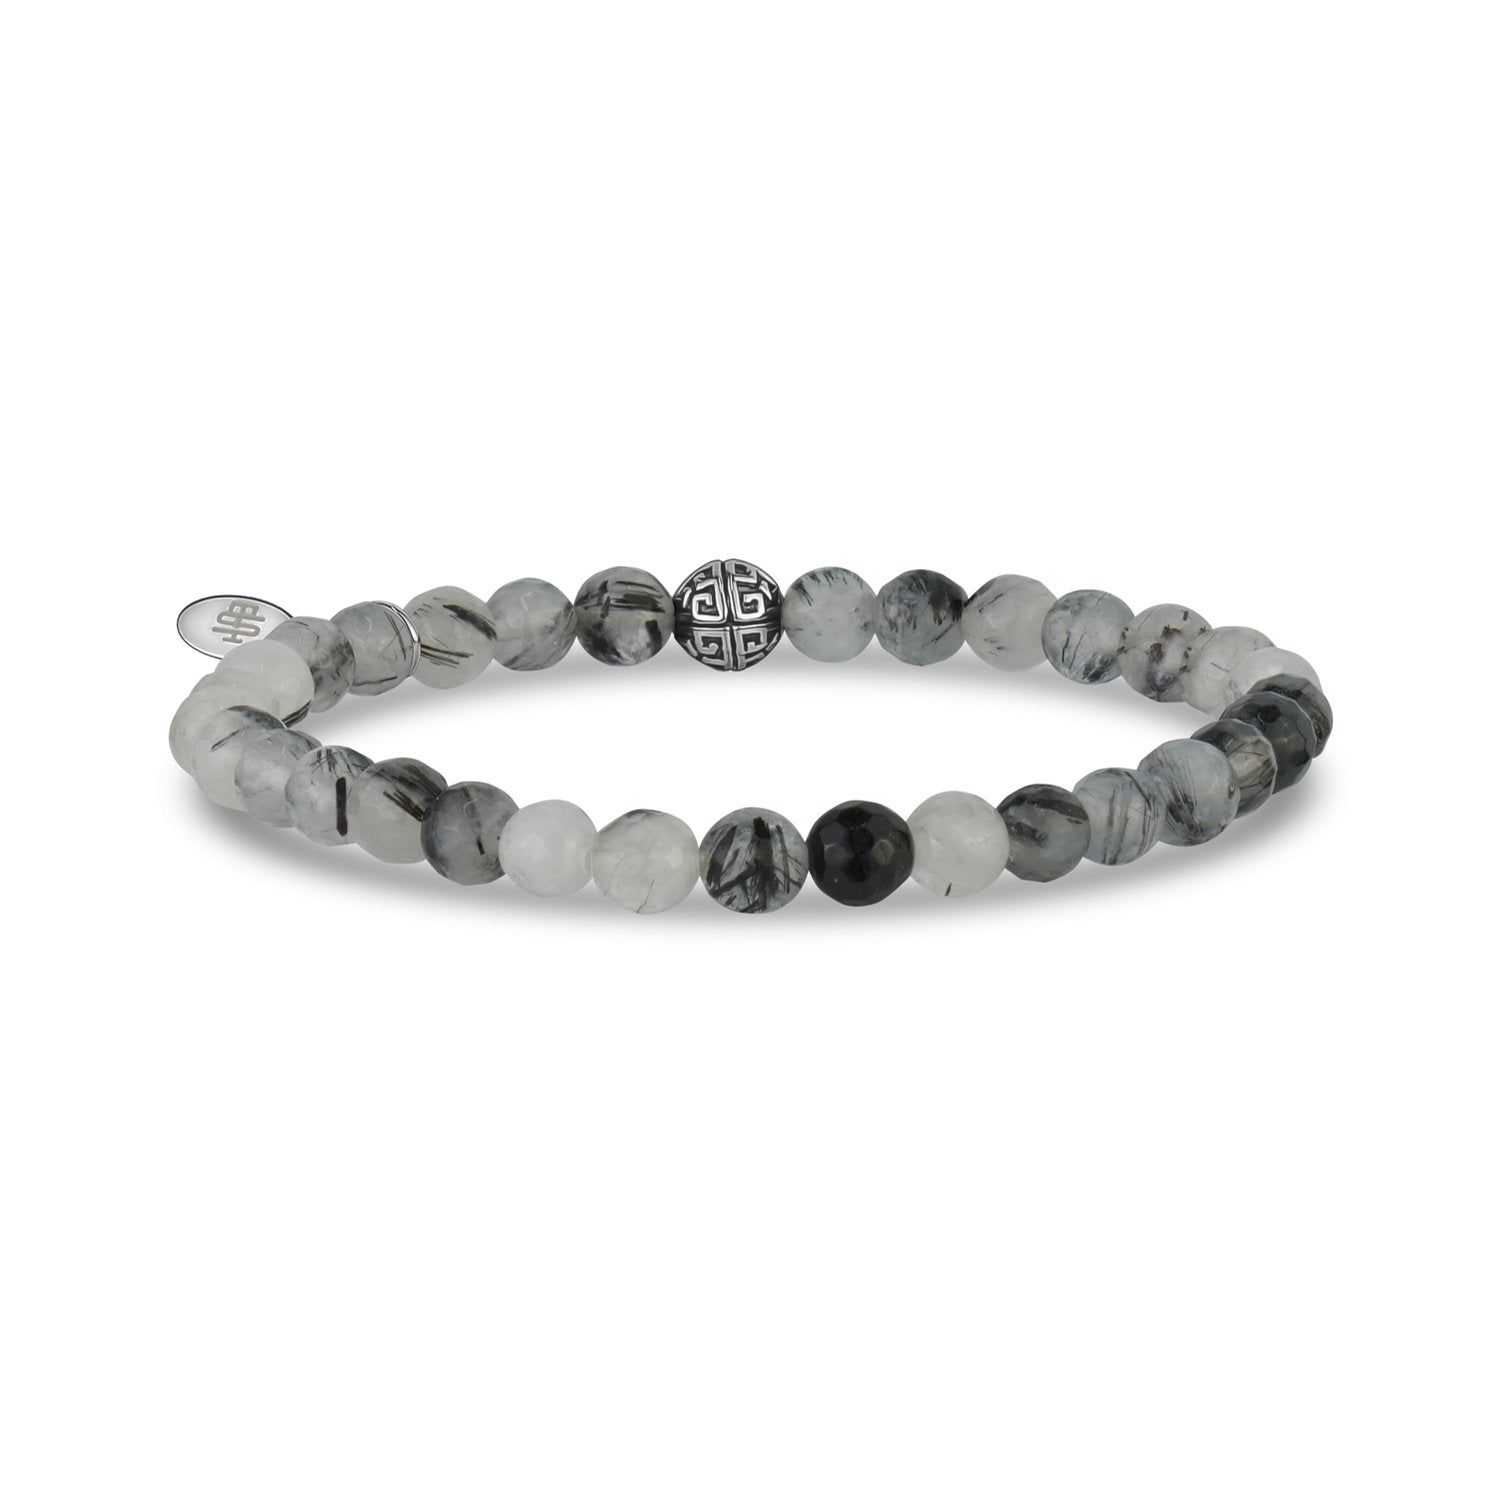 Unisex Bead Bracelet - 6mm Rutilated Quartz Stretch Bead Bracelet